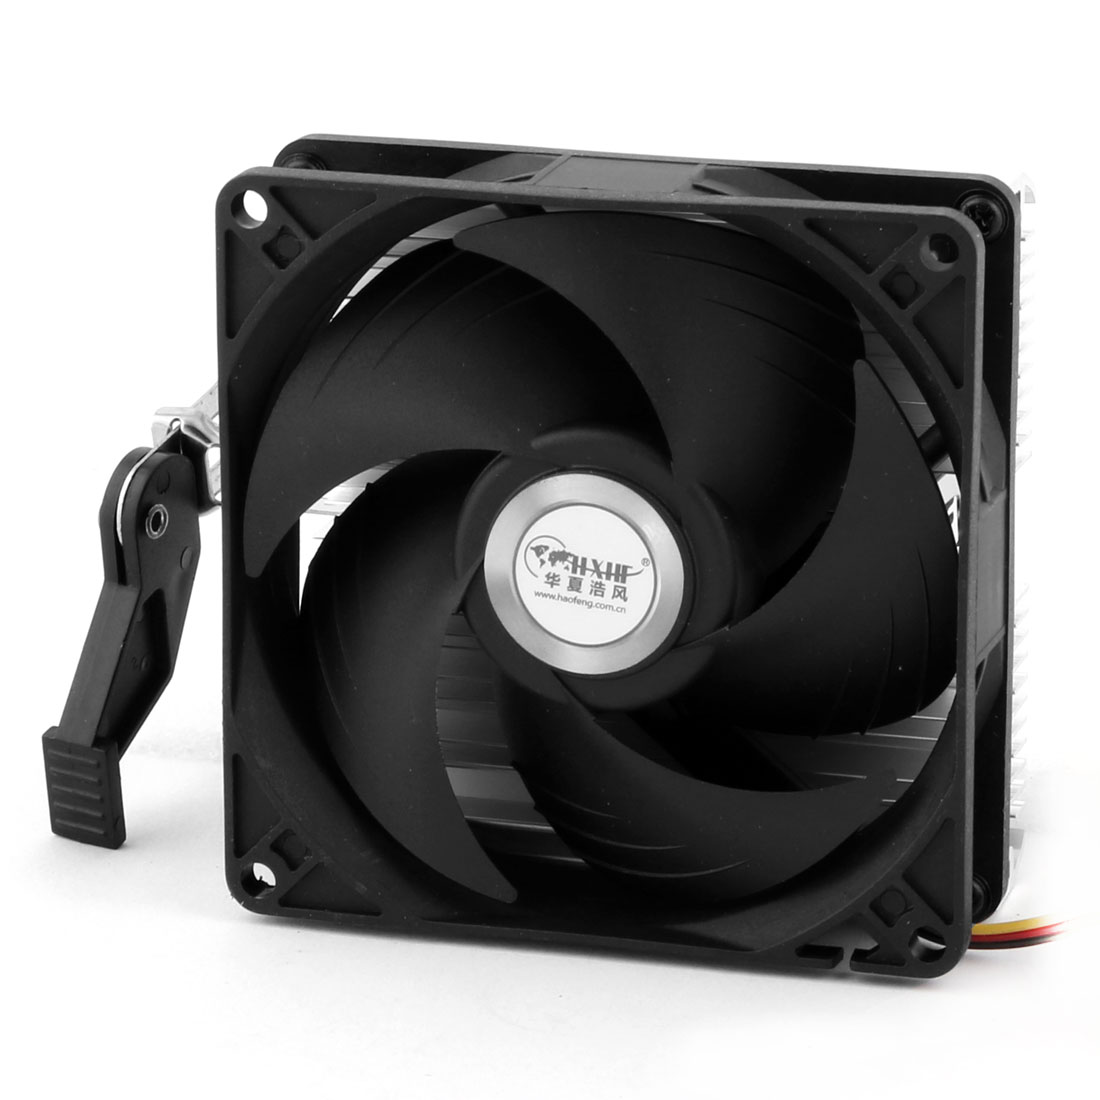 DC 12V 2600RPM 3Pins CPU Cooler Cooling Fan Heatsink for AMD Athlon 64 X2 5600+